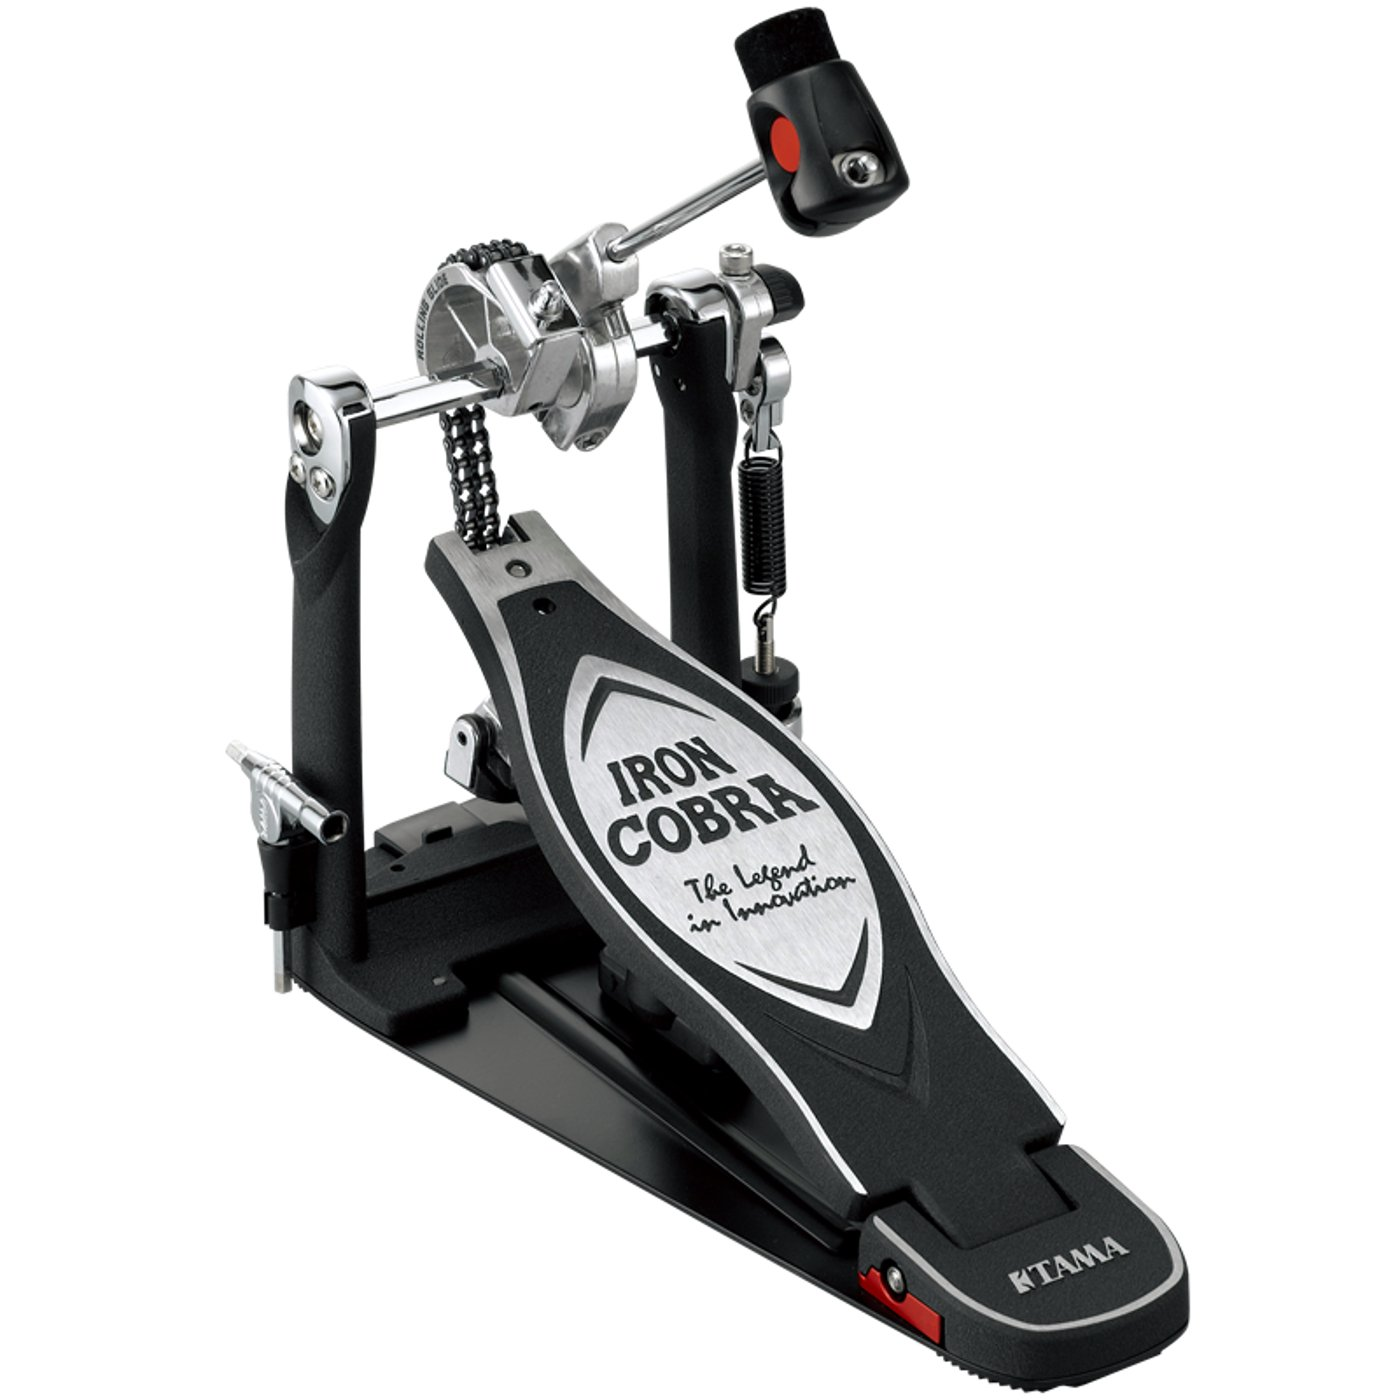 Iron Cobra 900 Rolling Glide Single Pedal